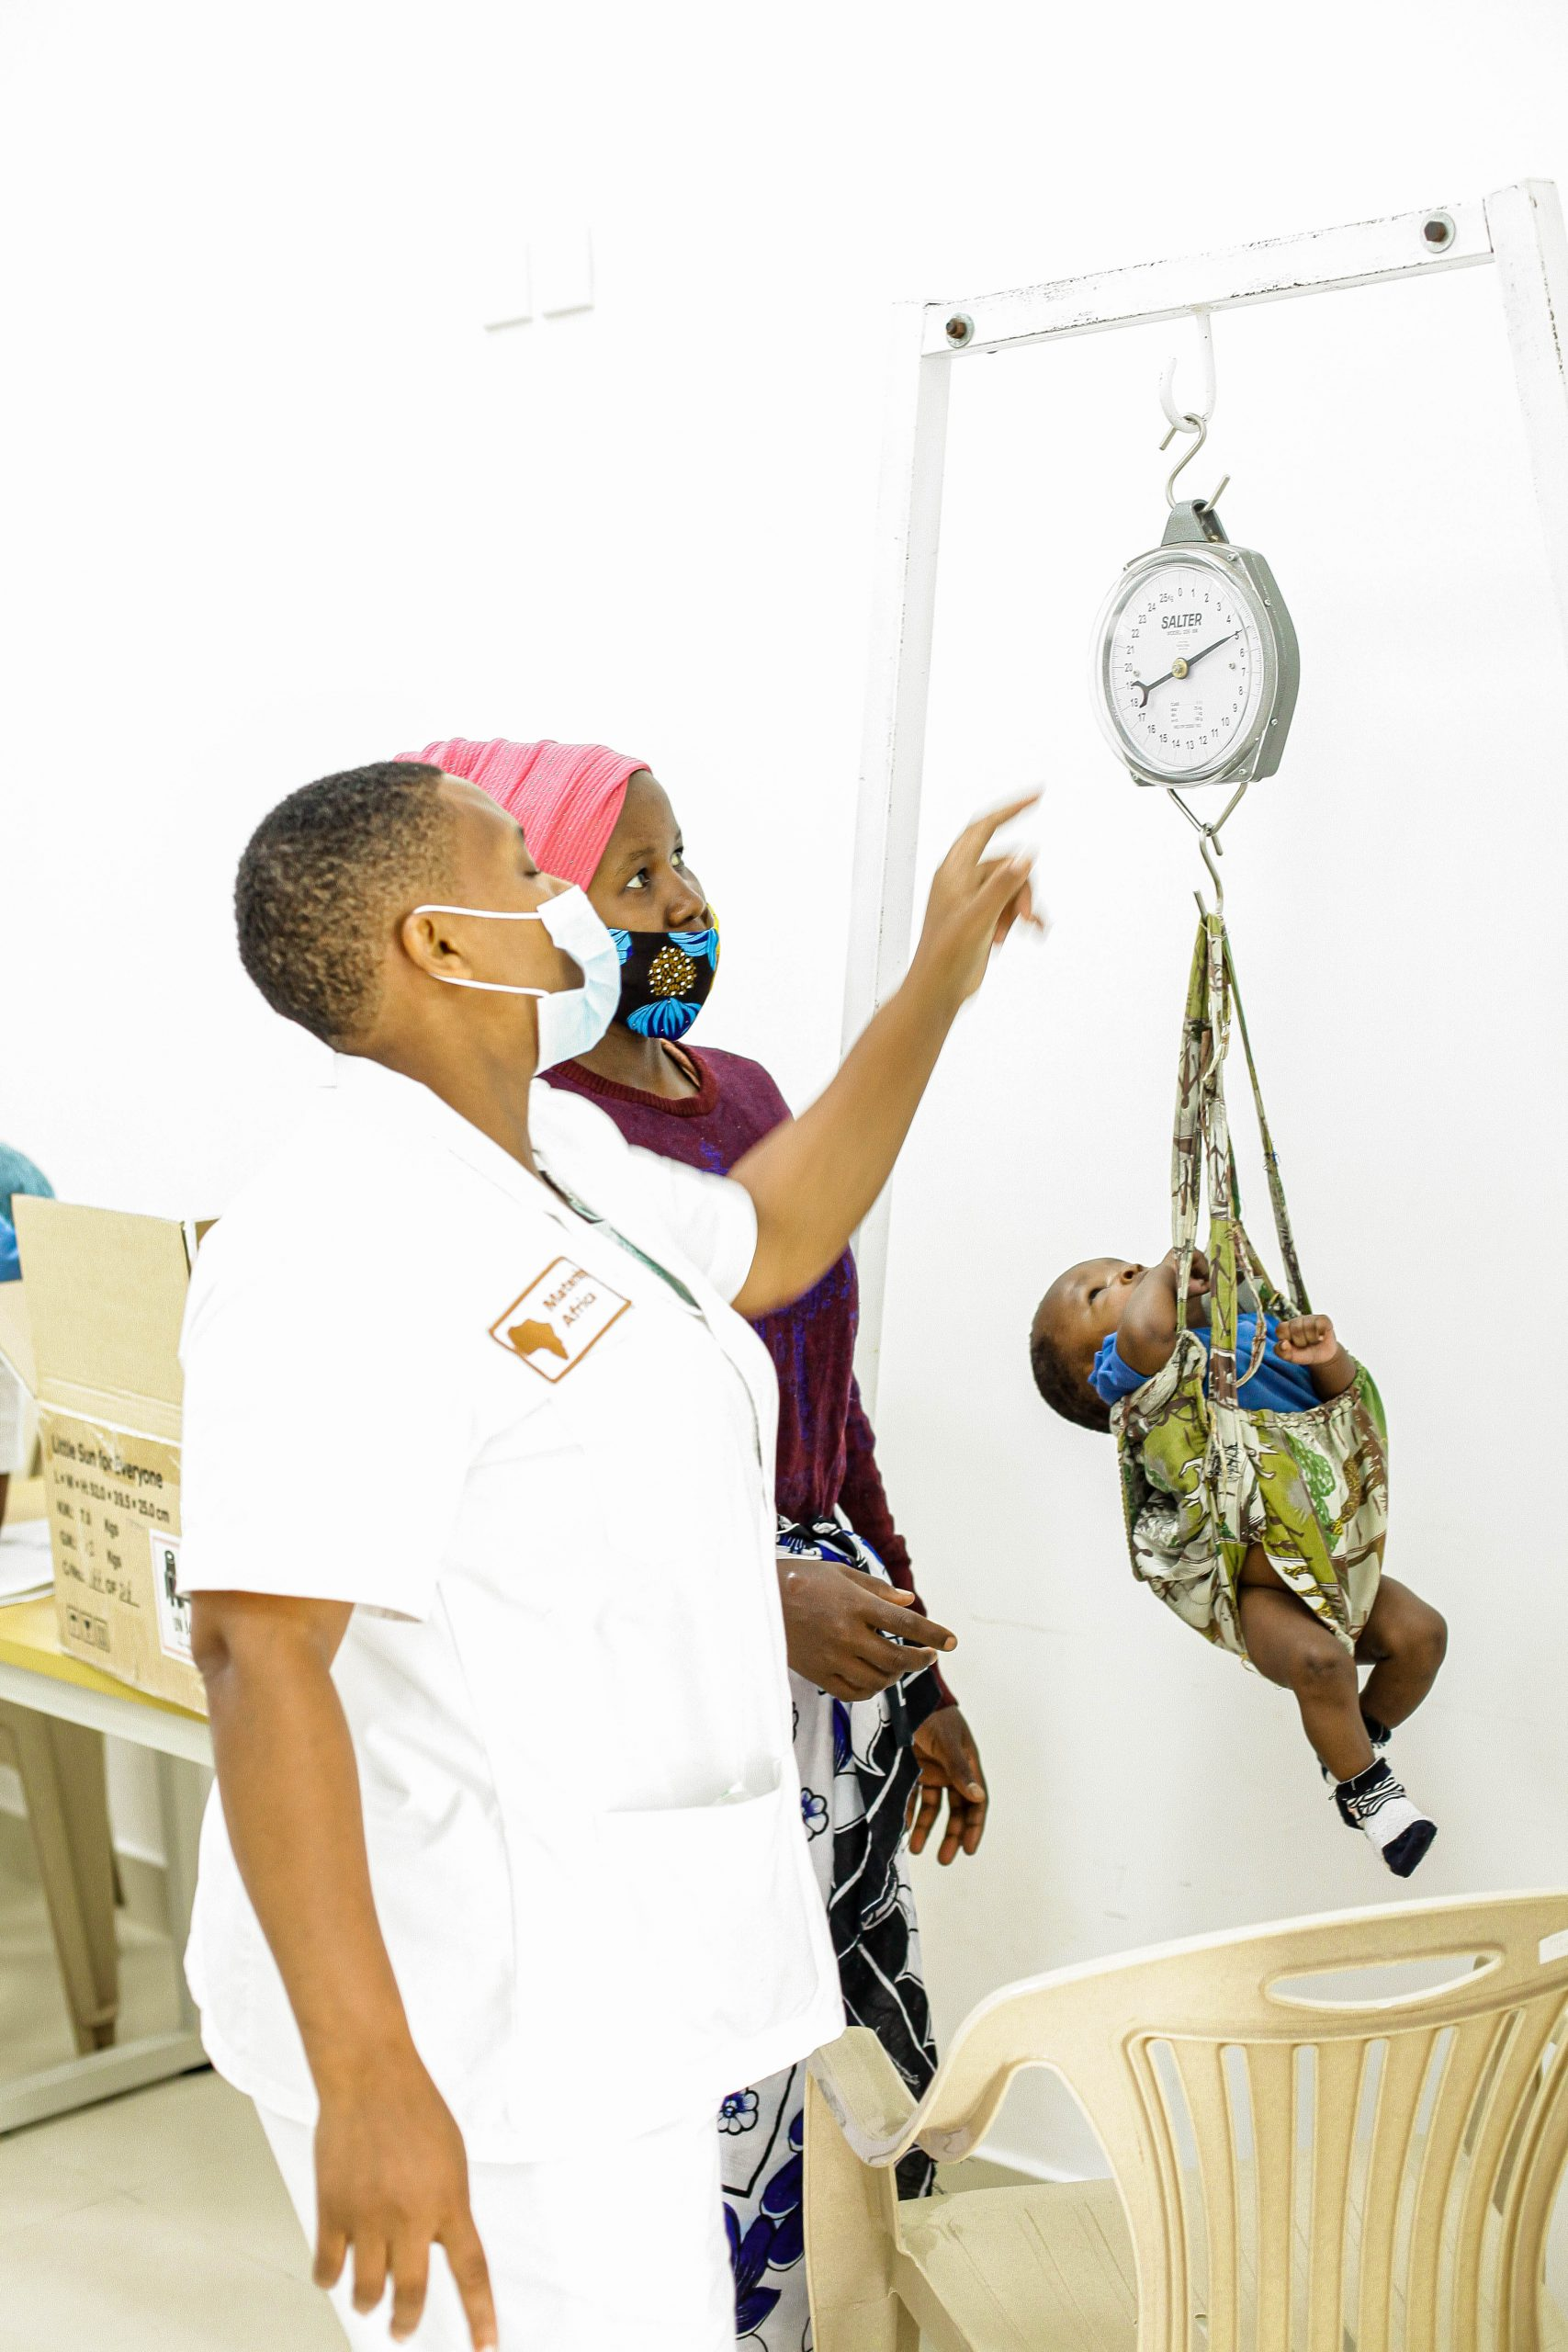 A health worker weighing a small child